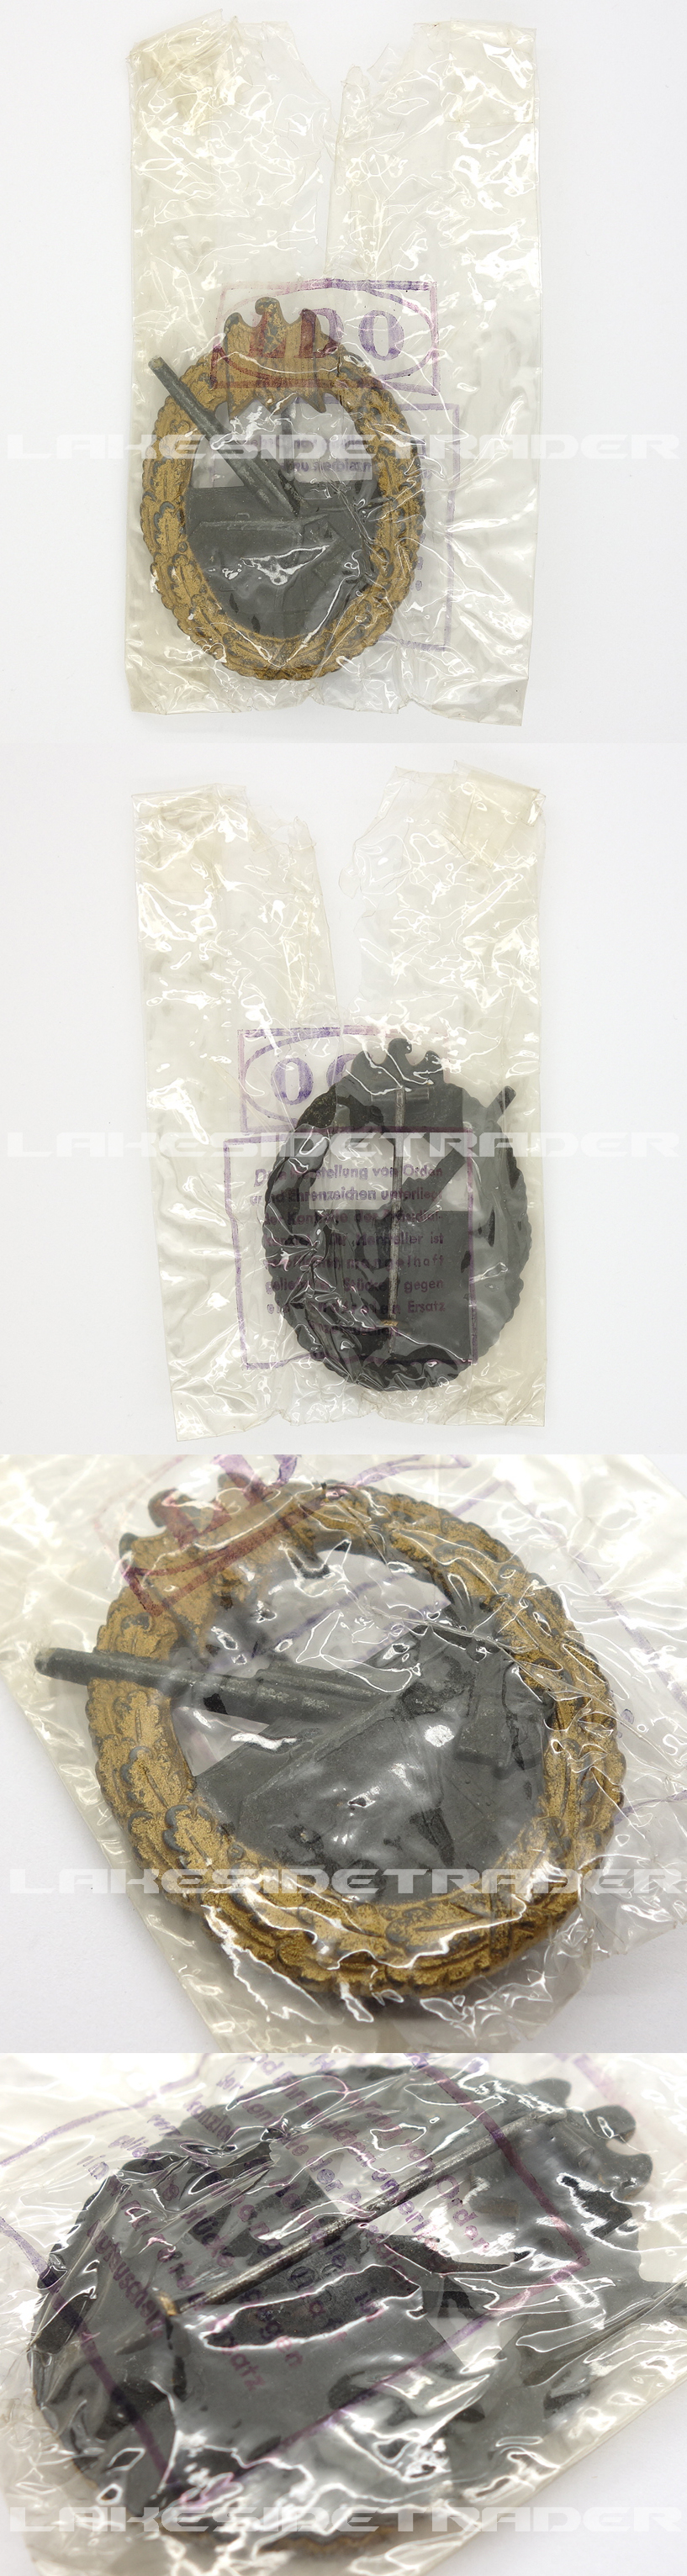 LDO Cellophane Package – Navy Coastal Artillery Badge by FLL 43